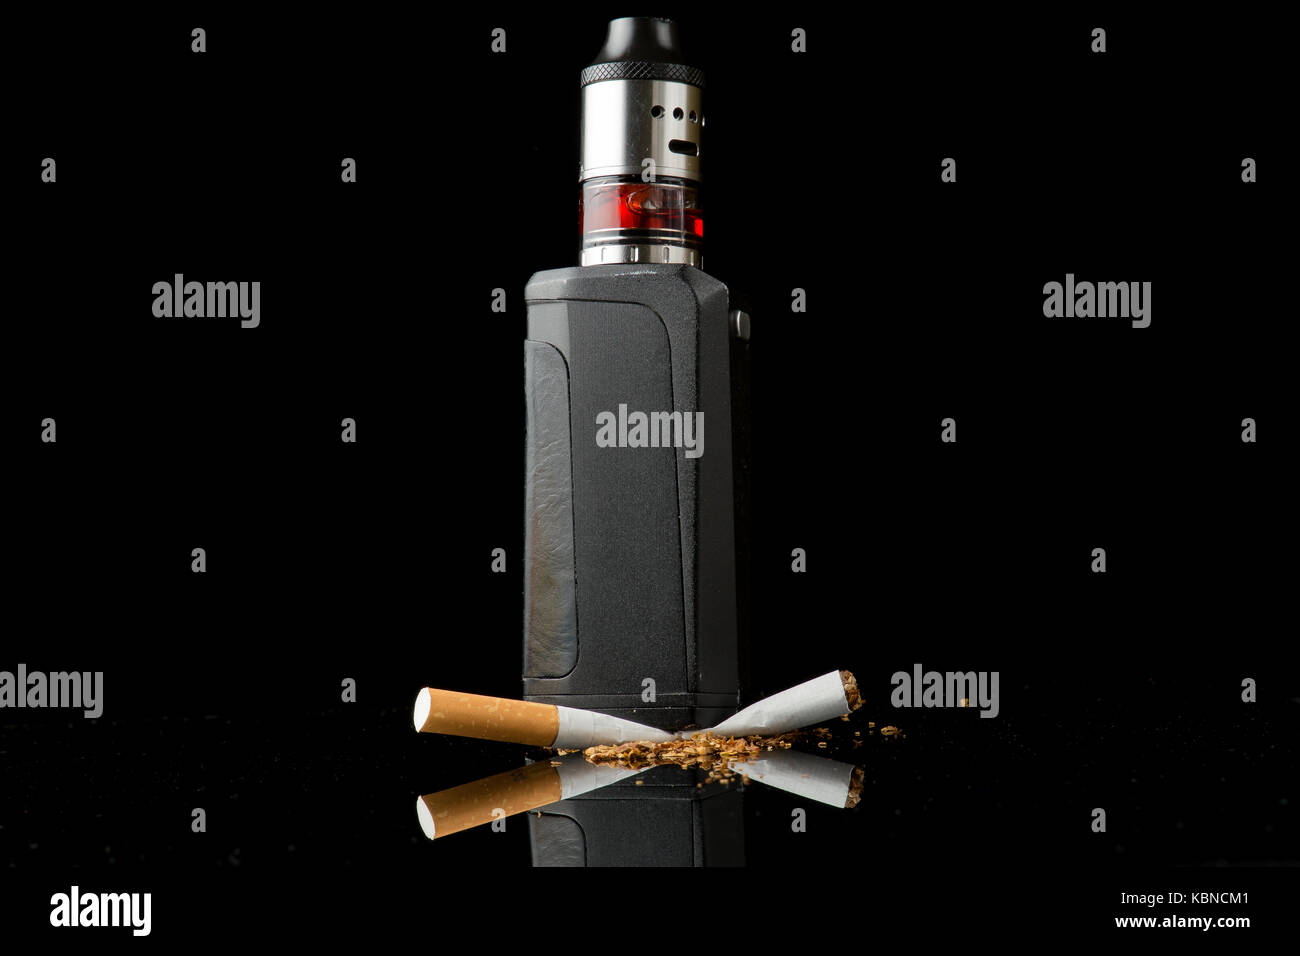 Modern vaporiser versus old tobacco cigarette Stock Photo